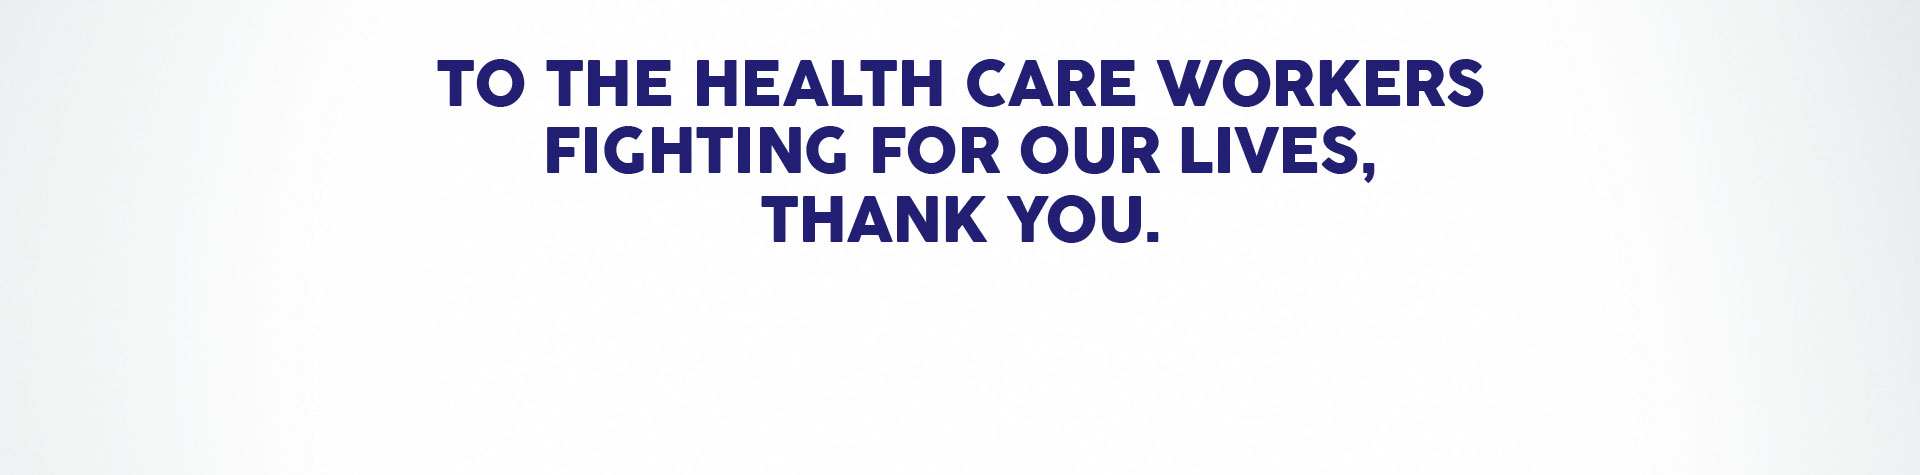 To Healthcare Workers Fighting For Our Lives, Thank You